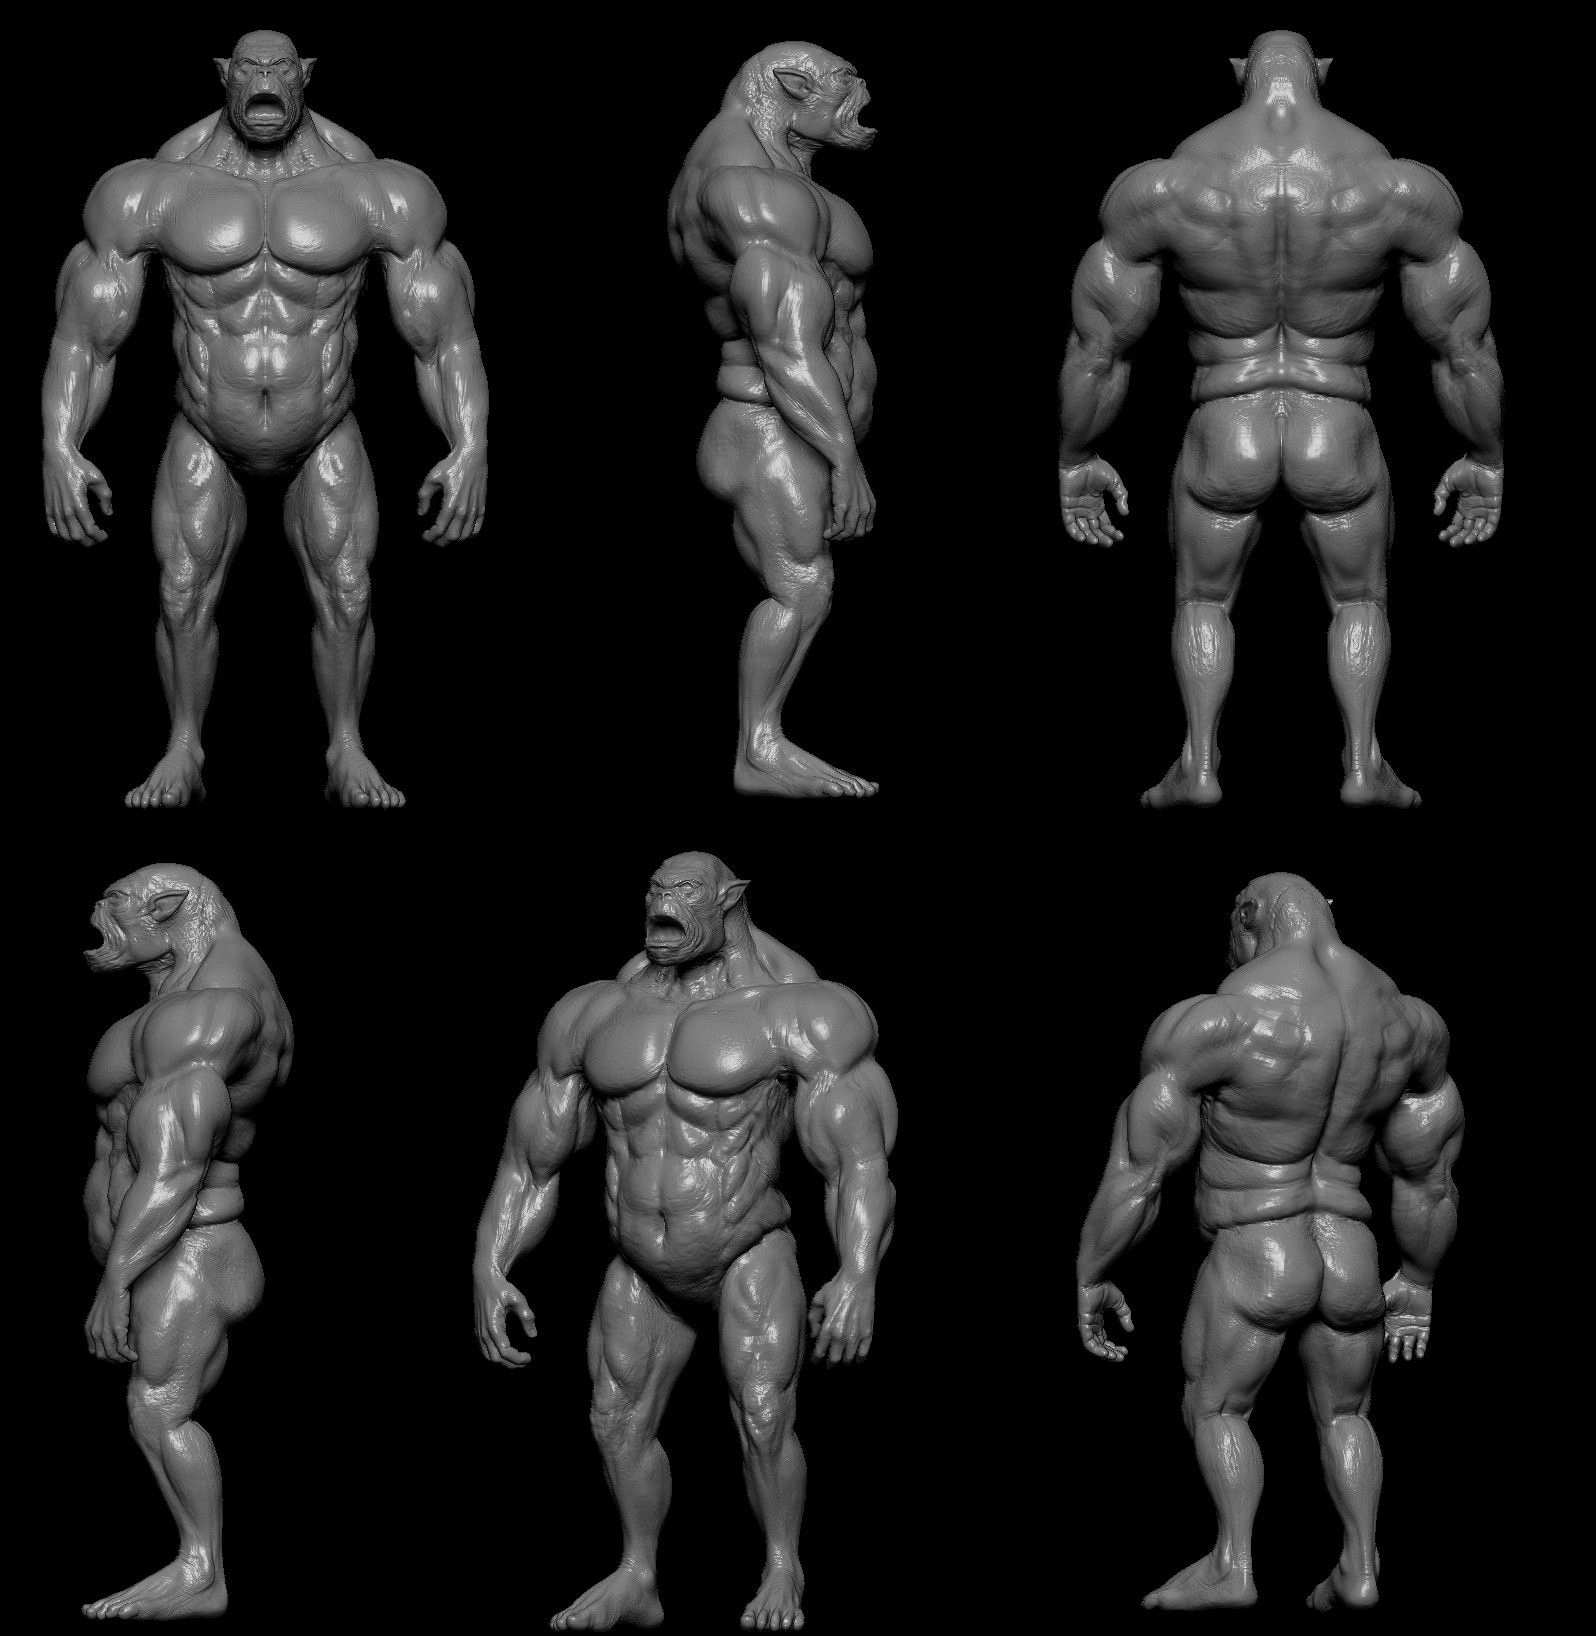 silverback gorilla muscles - Google 搜尋 | 3D/Sculpture reference ...